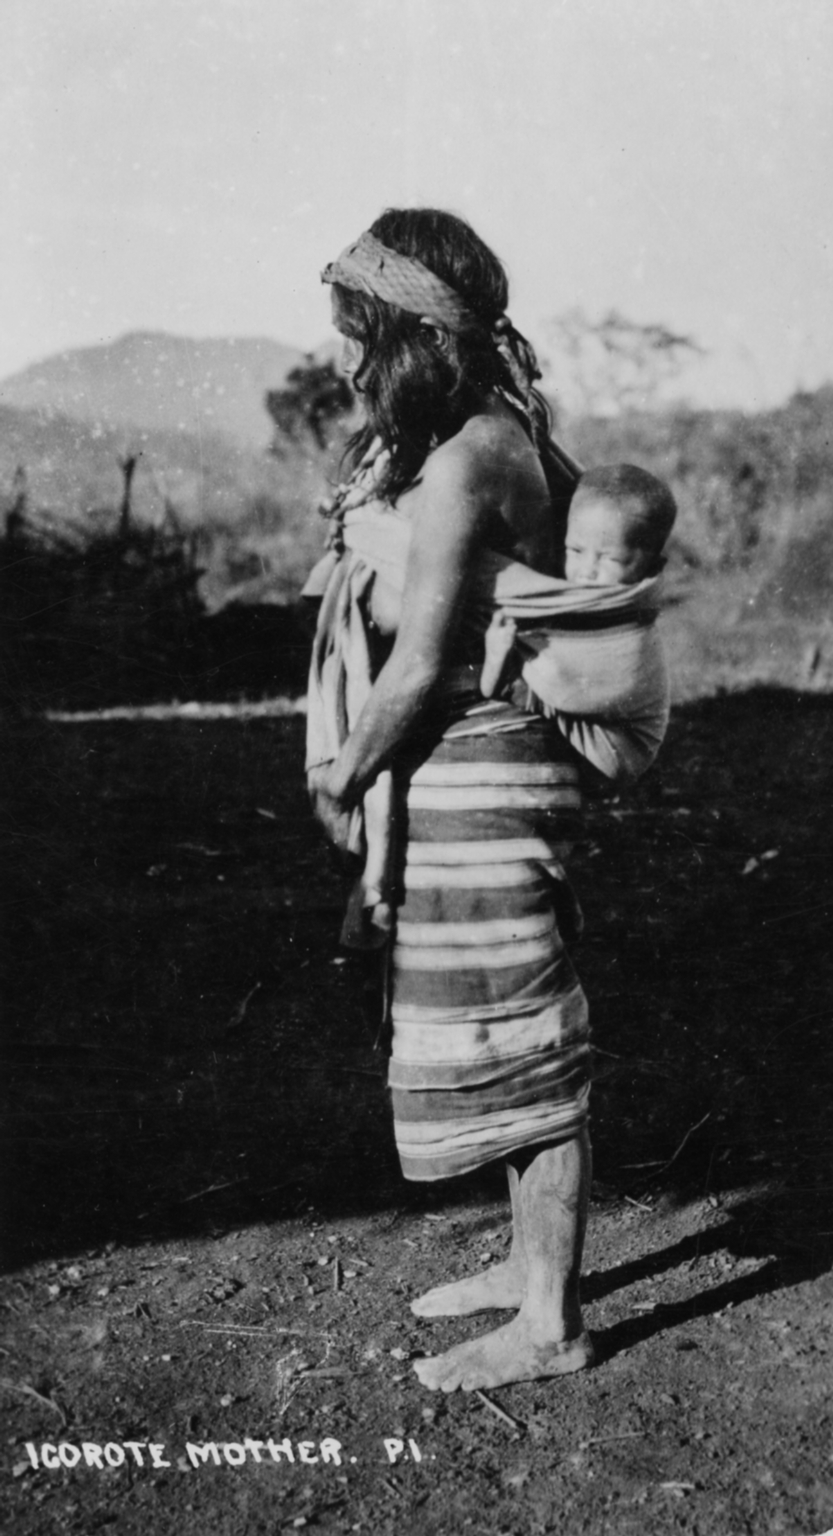 Igorot mother and child